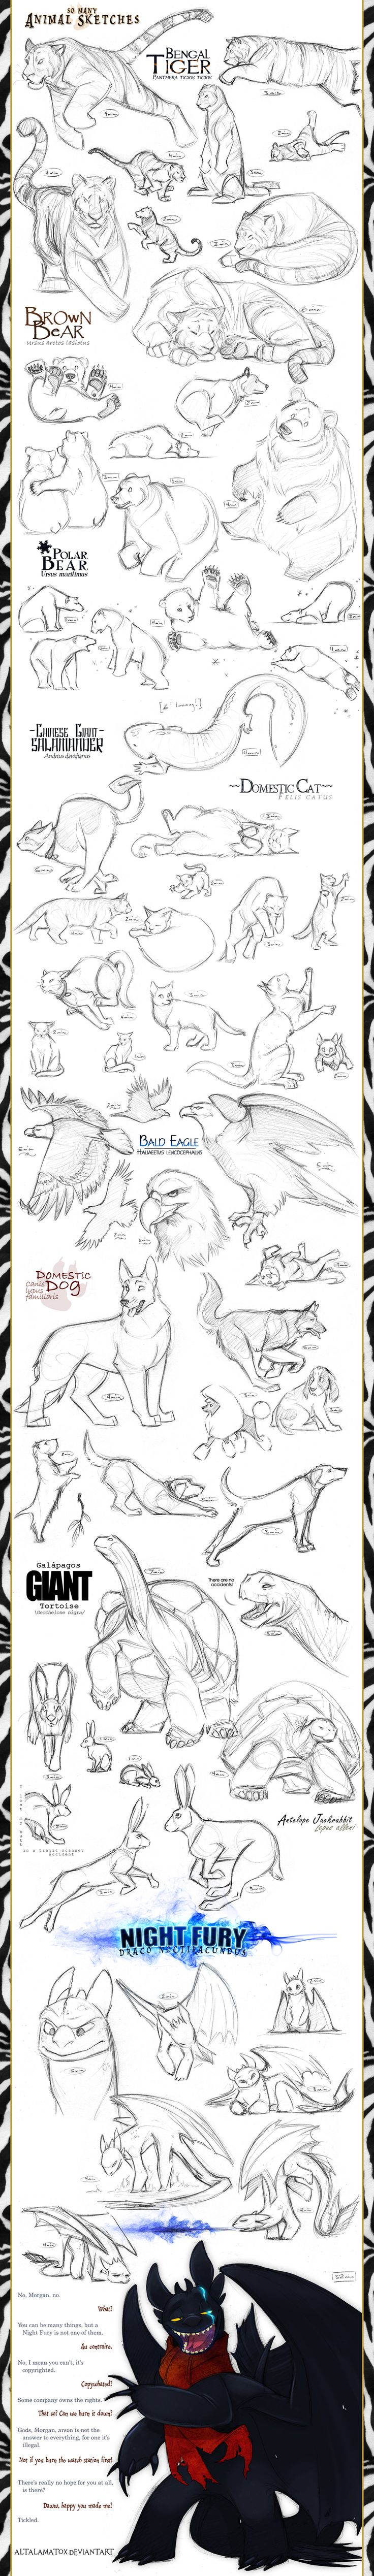 Animal Sketches by Altalamatox.deviantart.com on @deviantART || CHARACTER DESIGN REFERENCES | Find more at